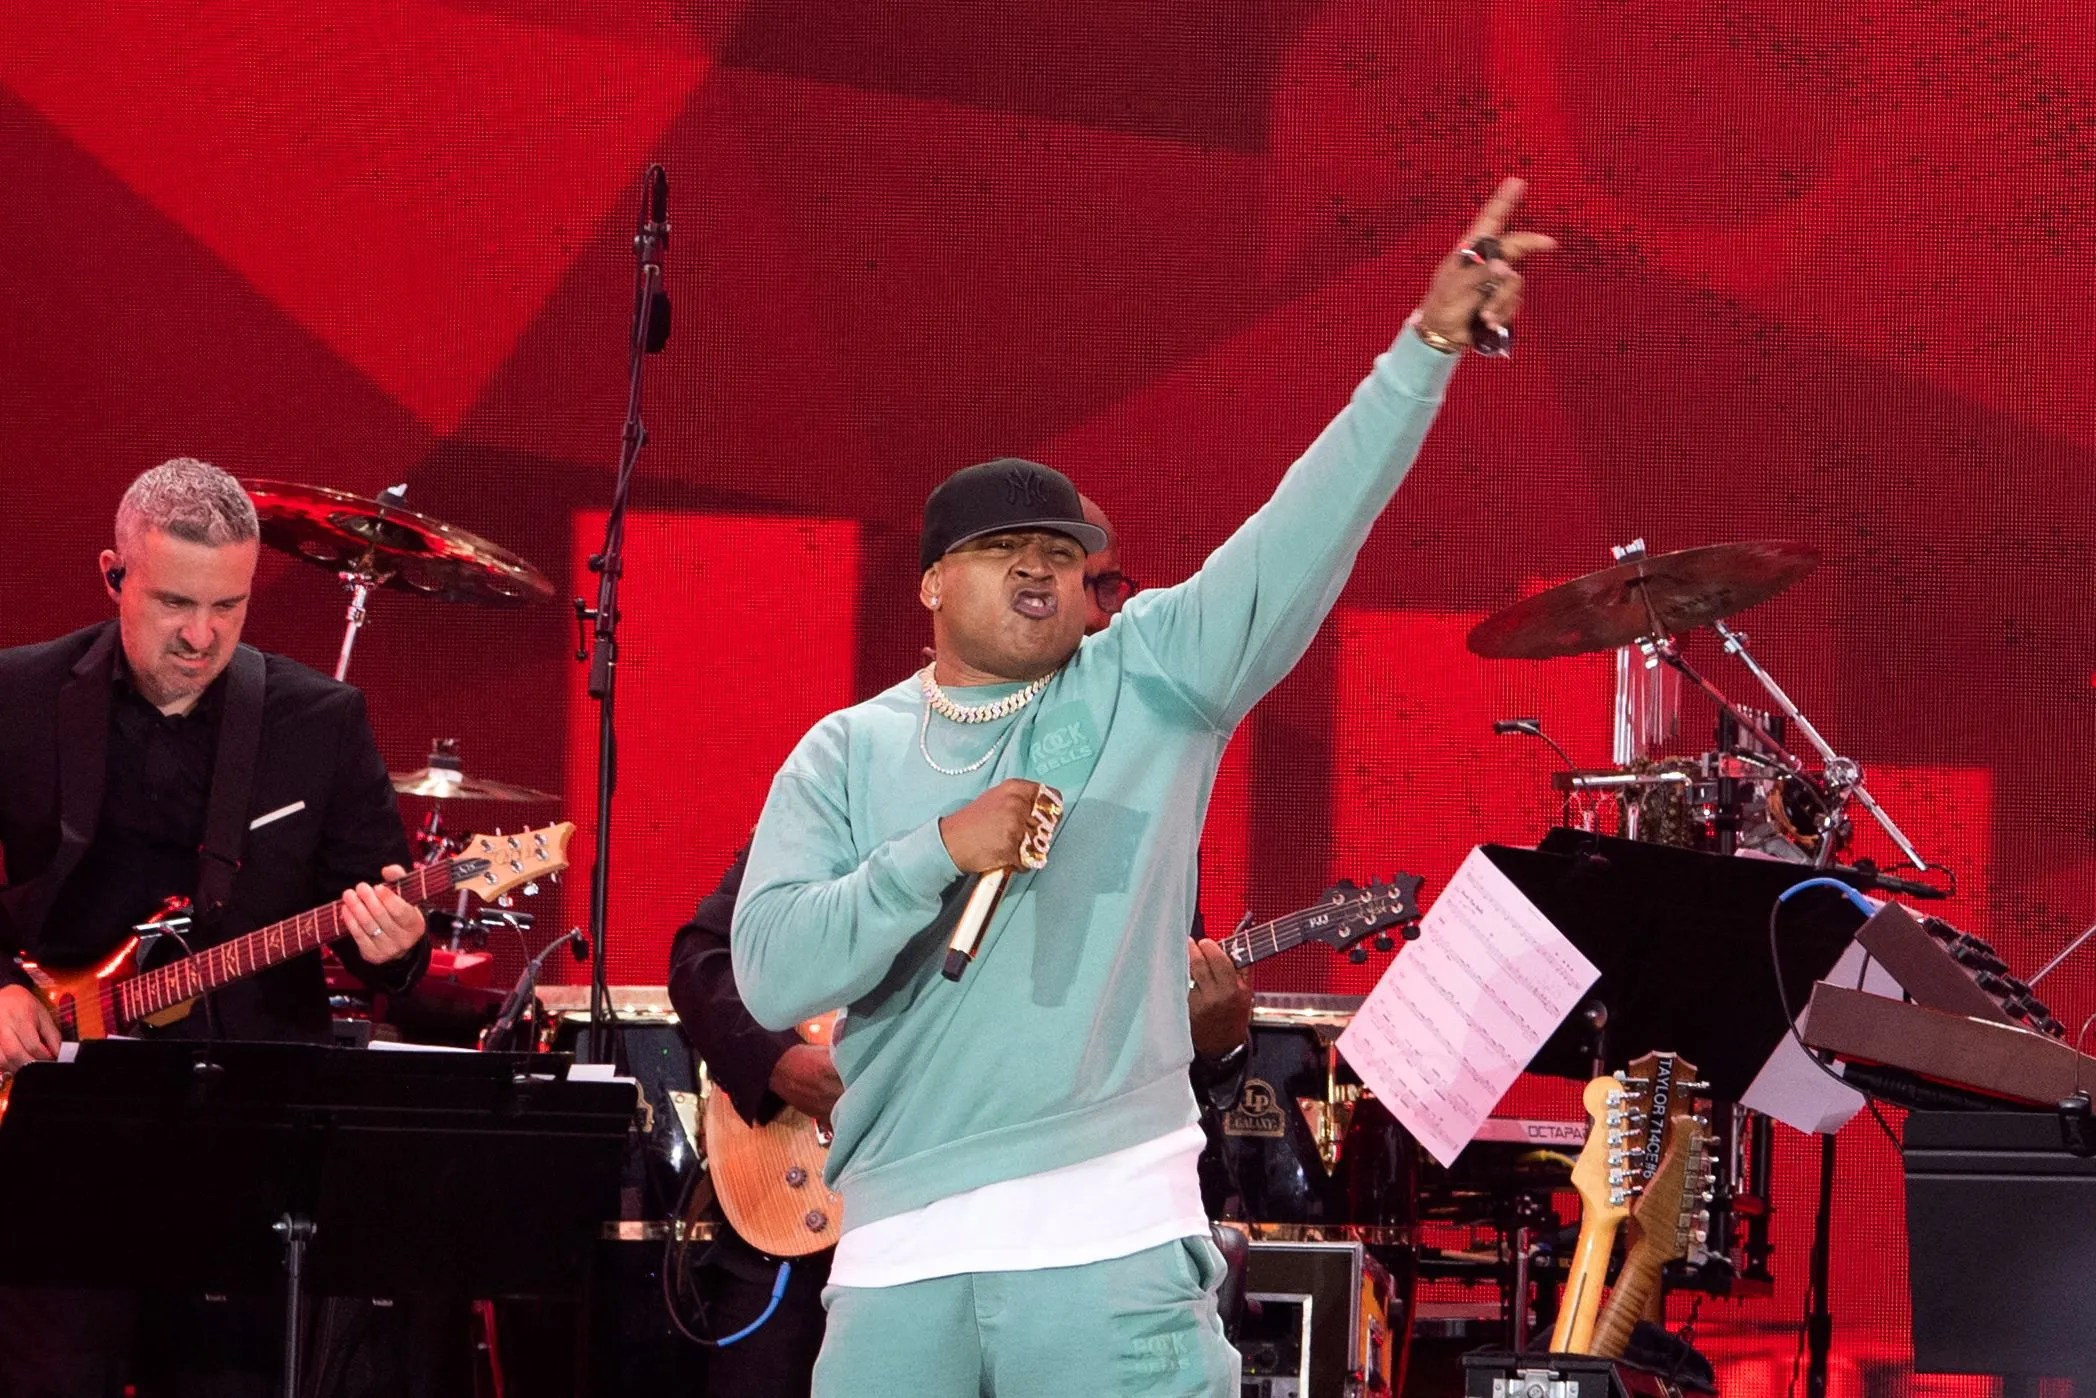 """LL Cool J performs  during the """"We Love NYC: The Homecoming Concert"""" in Central Park on August 21, 2021 in New York City. His set also featured Fat Joe, Rev. Run of Run-D.M.C. and Busta Rhymes."""